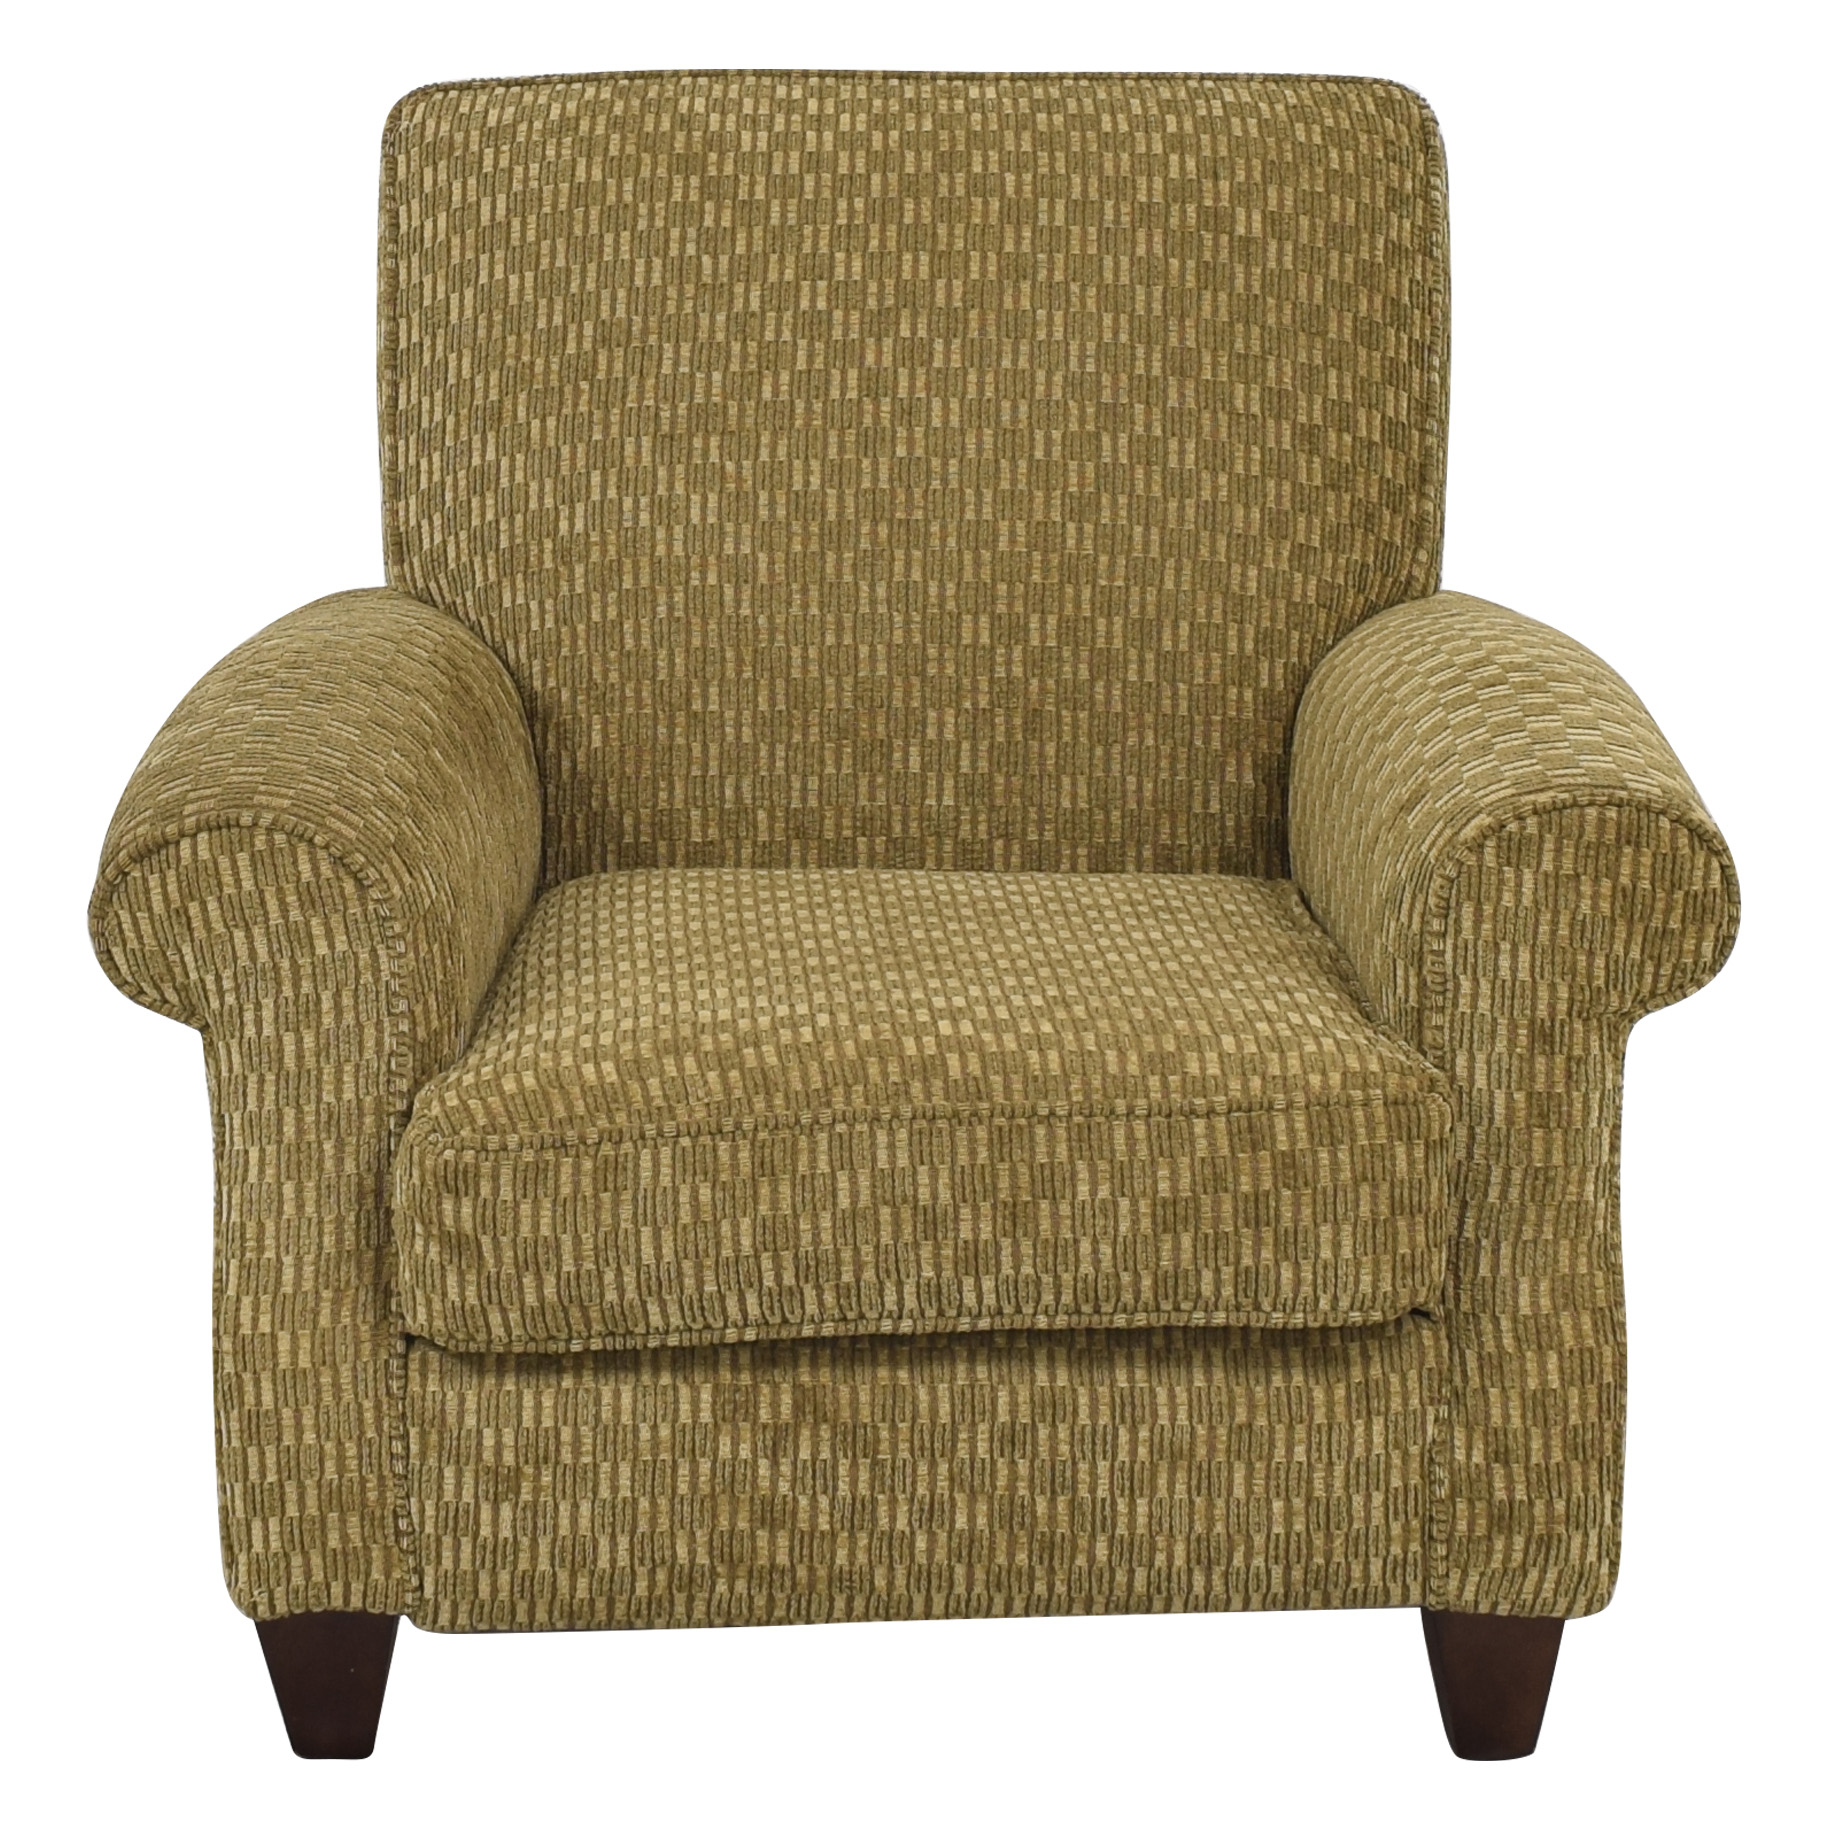 shop Alan White Casual Stationary Accent Chair Alan White Accent Chairs